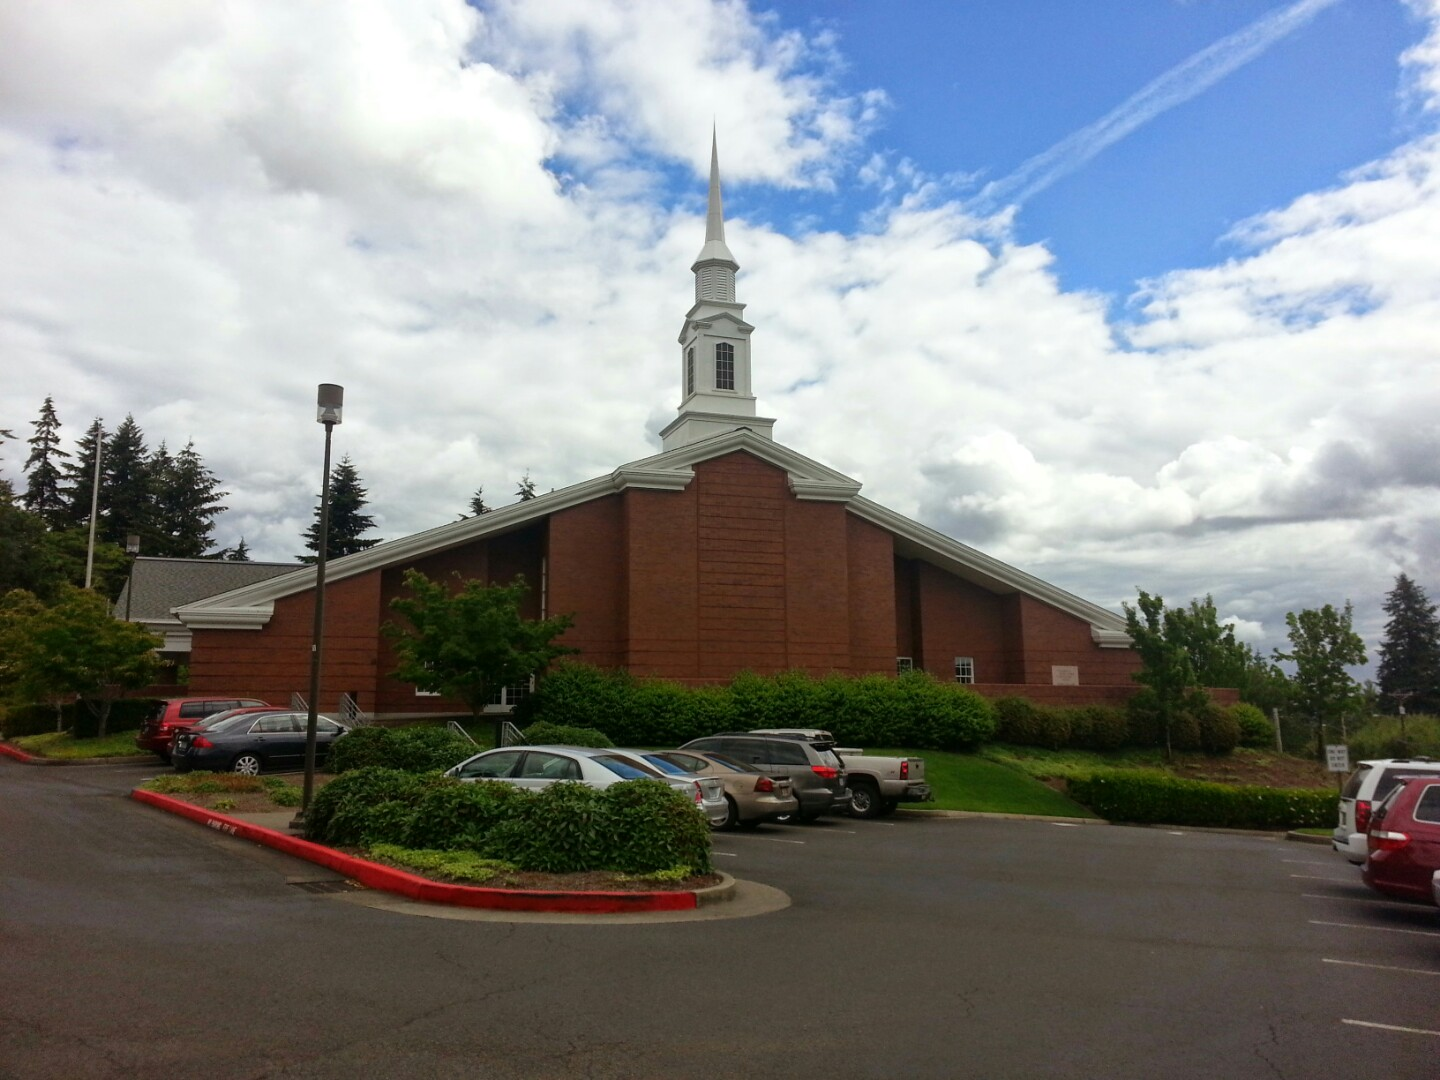 The Church of Jesus Christ of Latter-day Saints Gladstone OR | 8331 Cason Rd, Gladstone, OR, 97027 | +1 (503) 722-2069